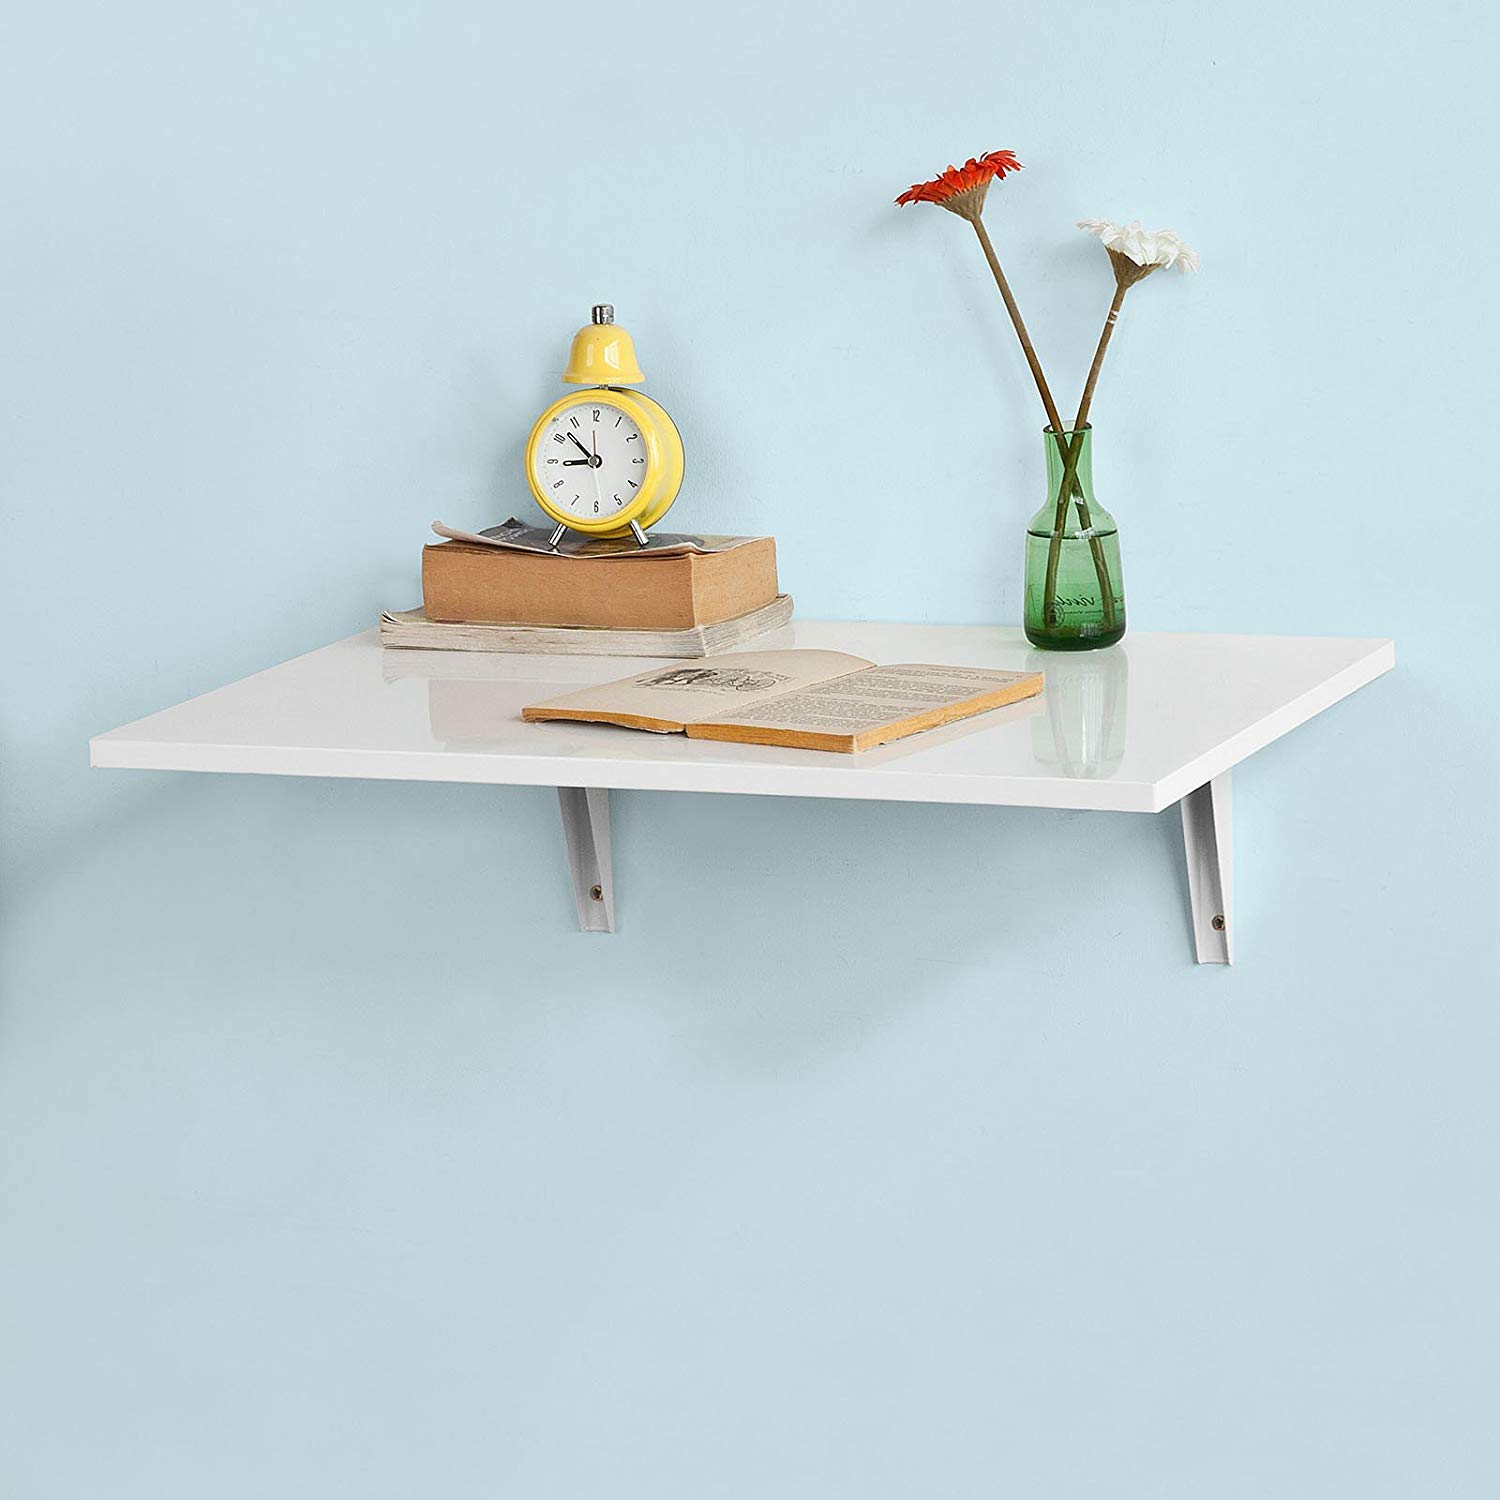 Wall-Mounted Folding Table, Wall-Mounted Fallen Table, Dining Table, Children's Table, White